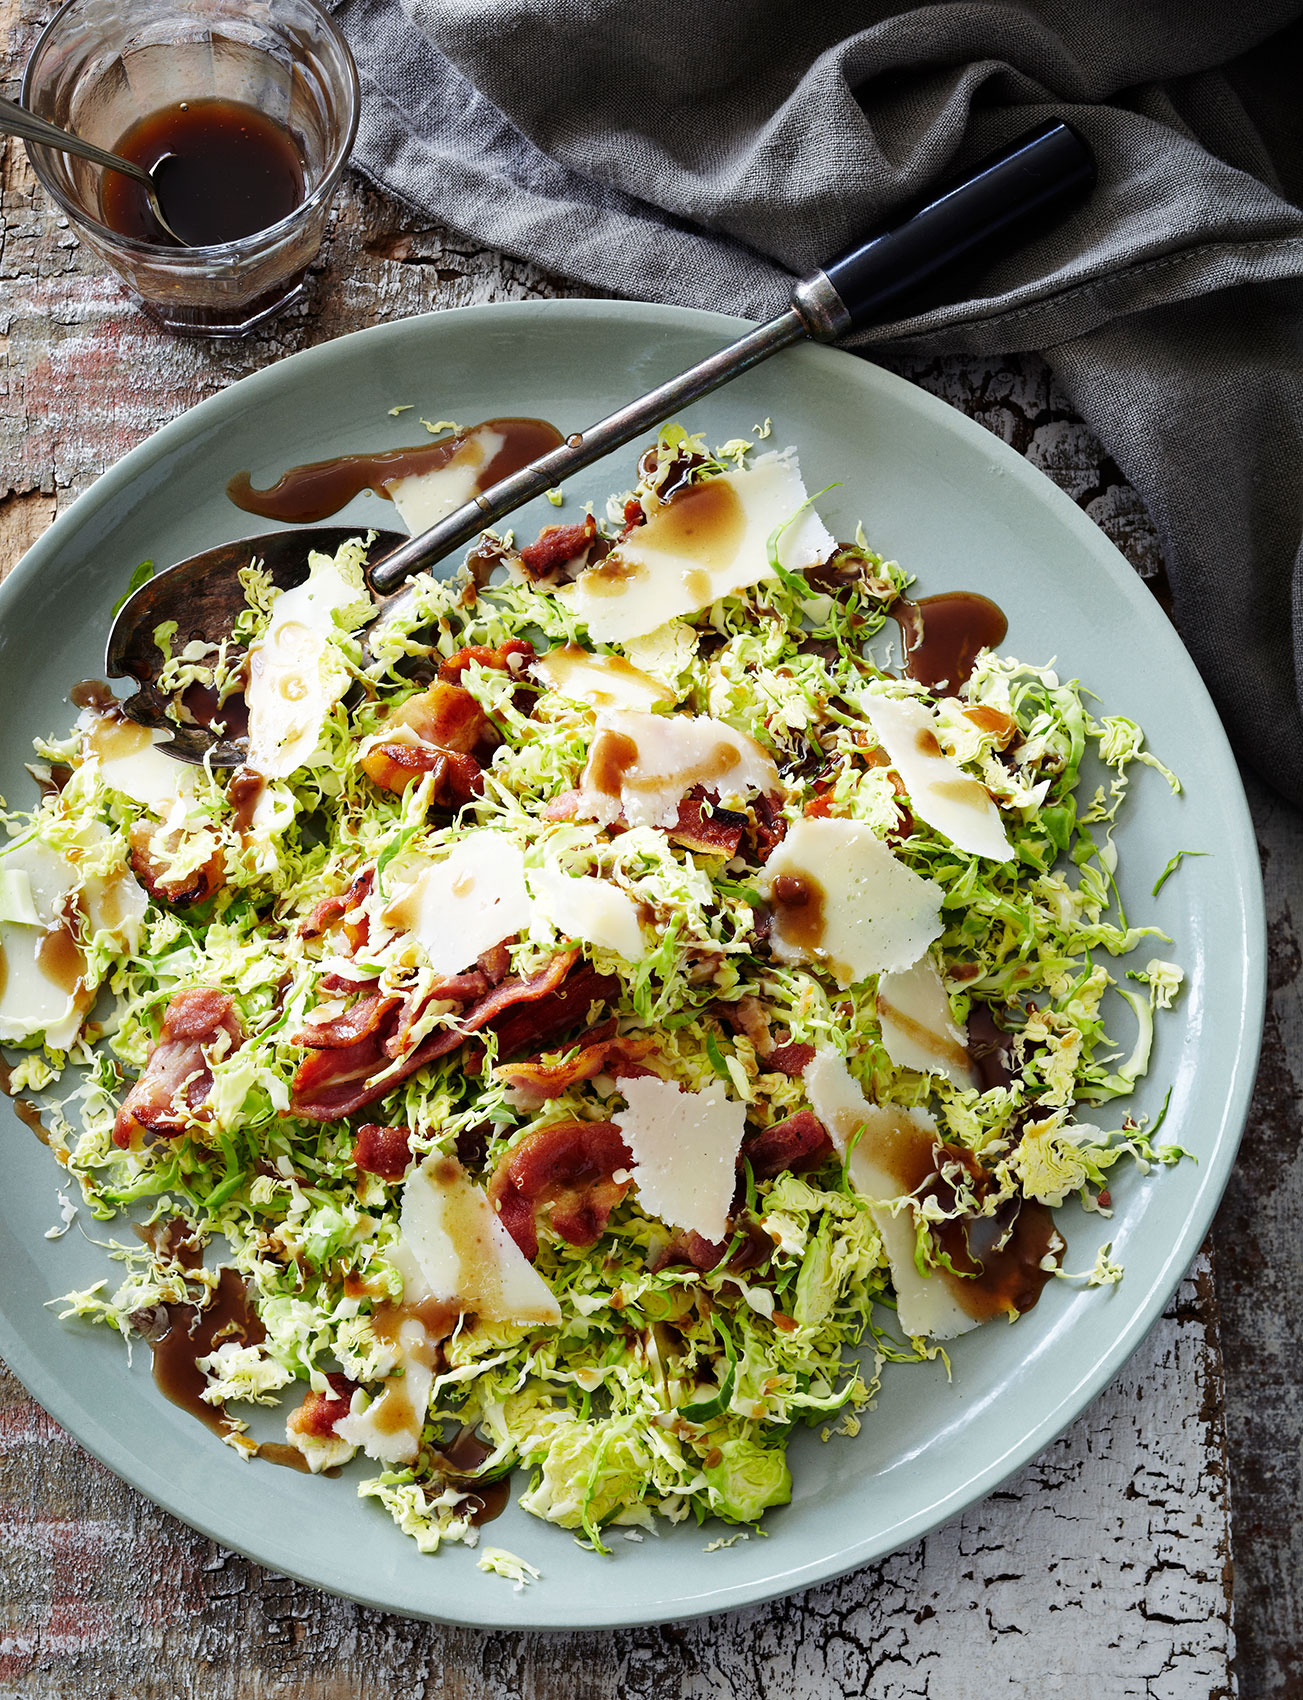 Penguin_Salads_Vege_BrusselsSprouts